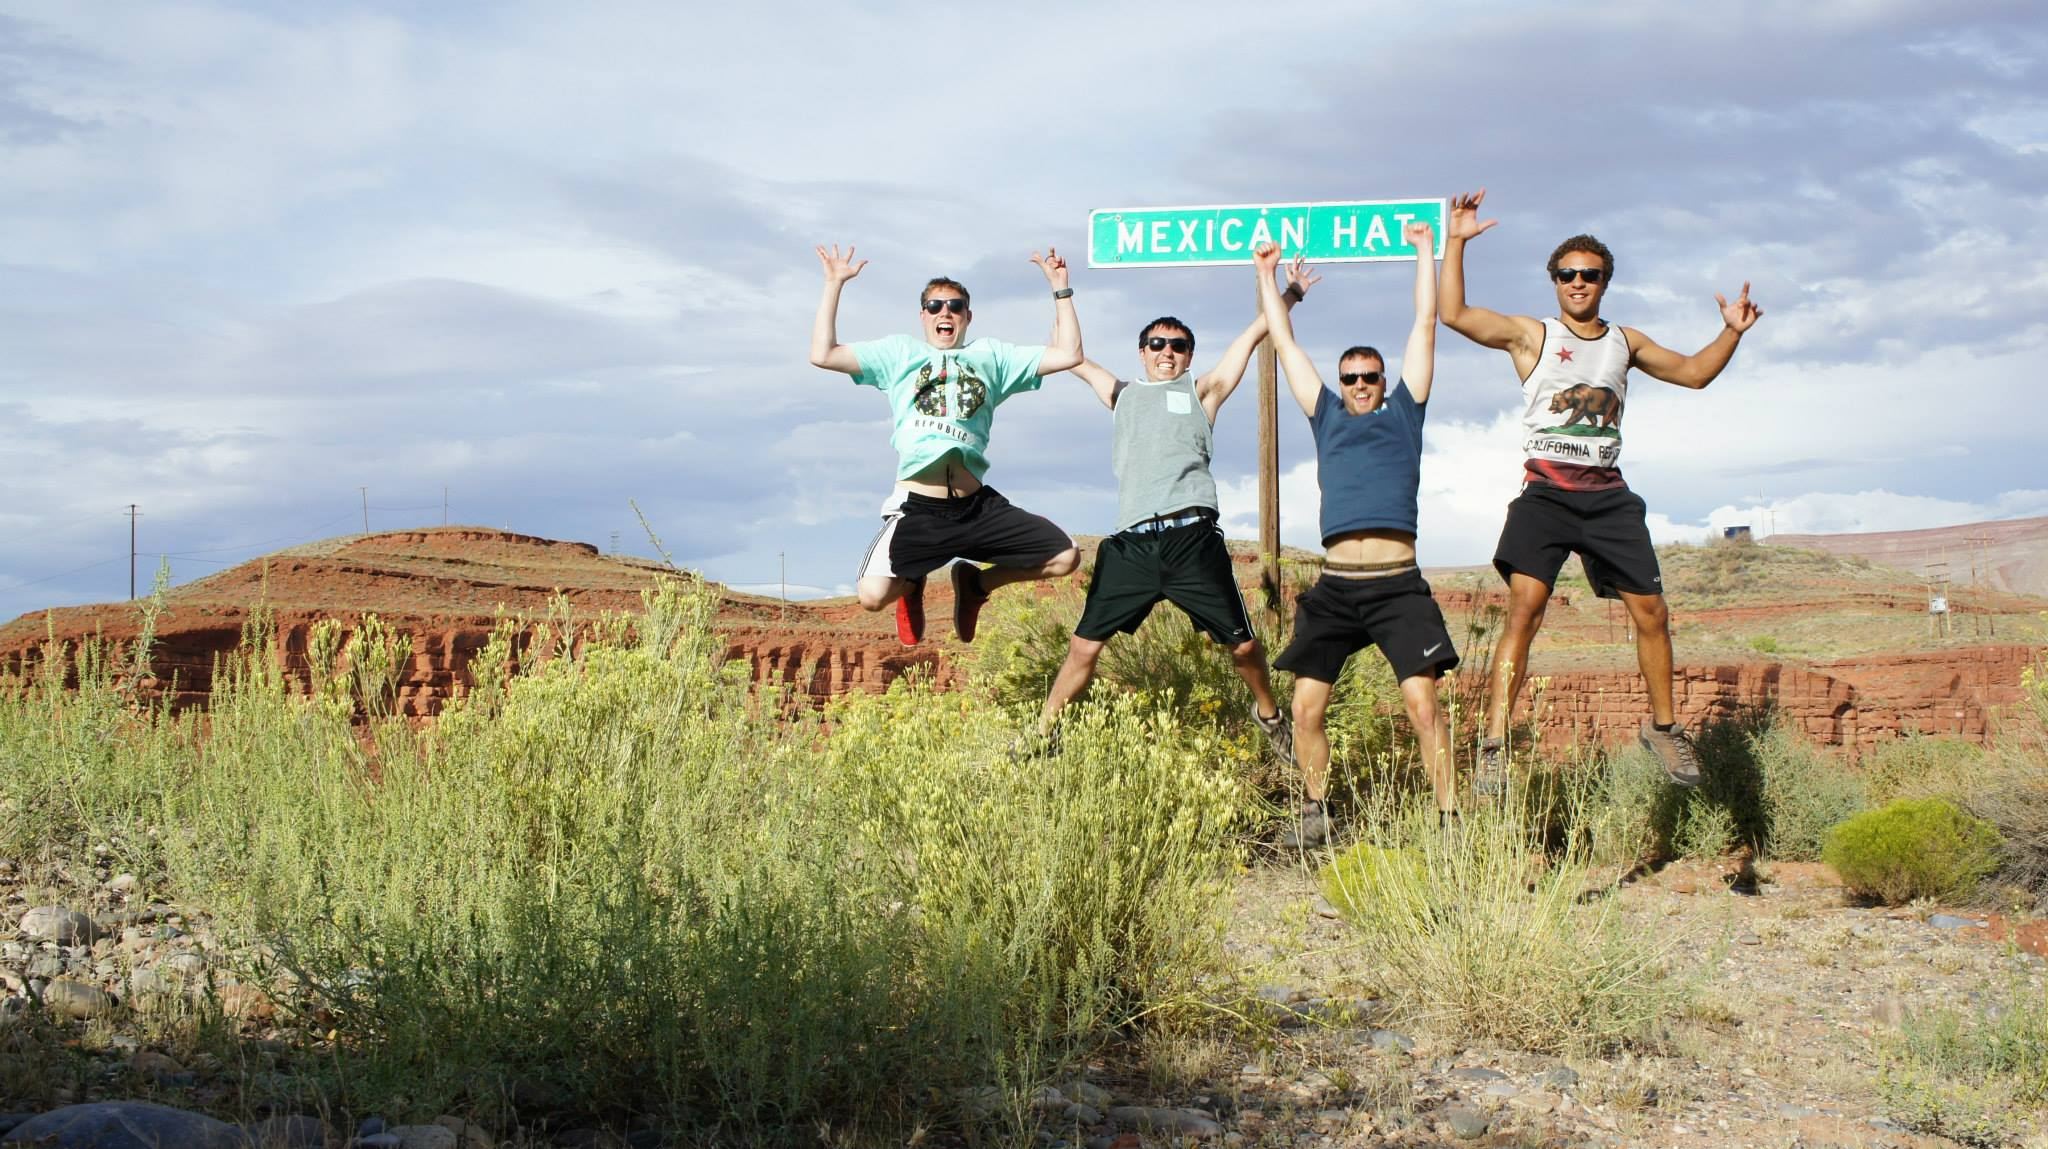 A demonstration of the excitement one feels upon arrival in Mexican Hat, Utah.